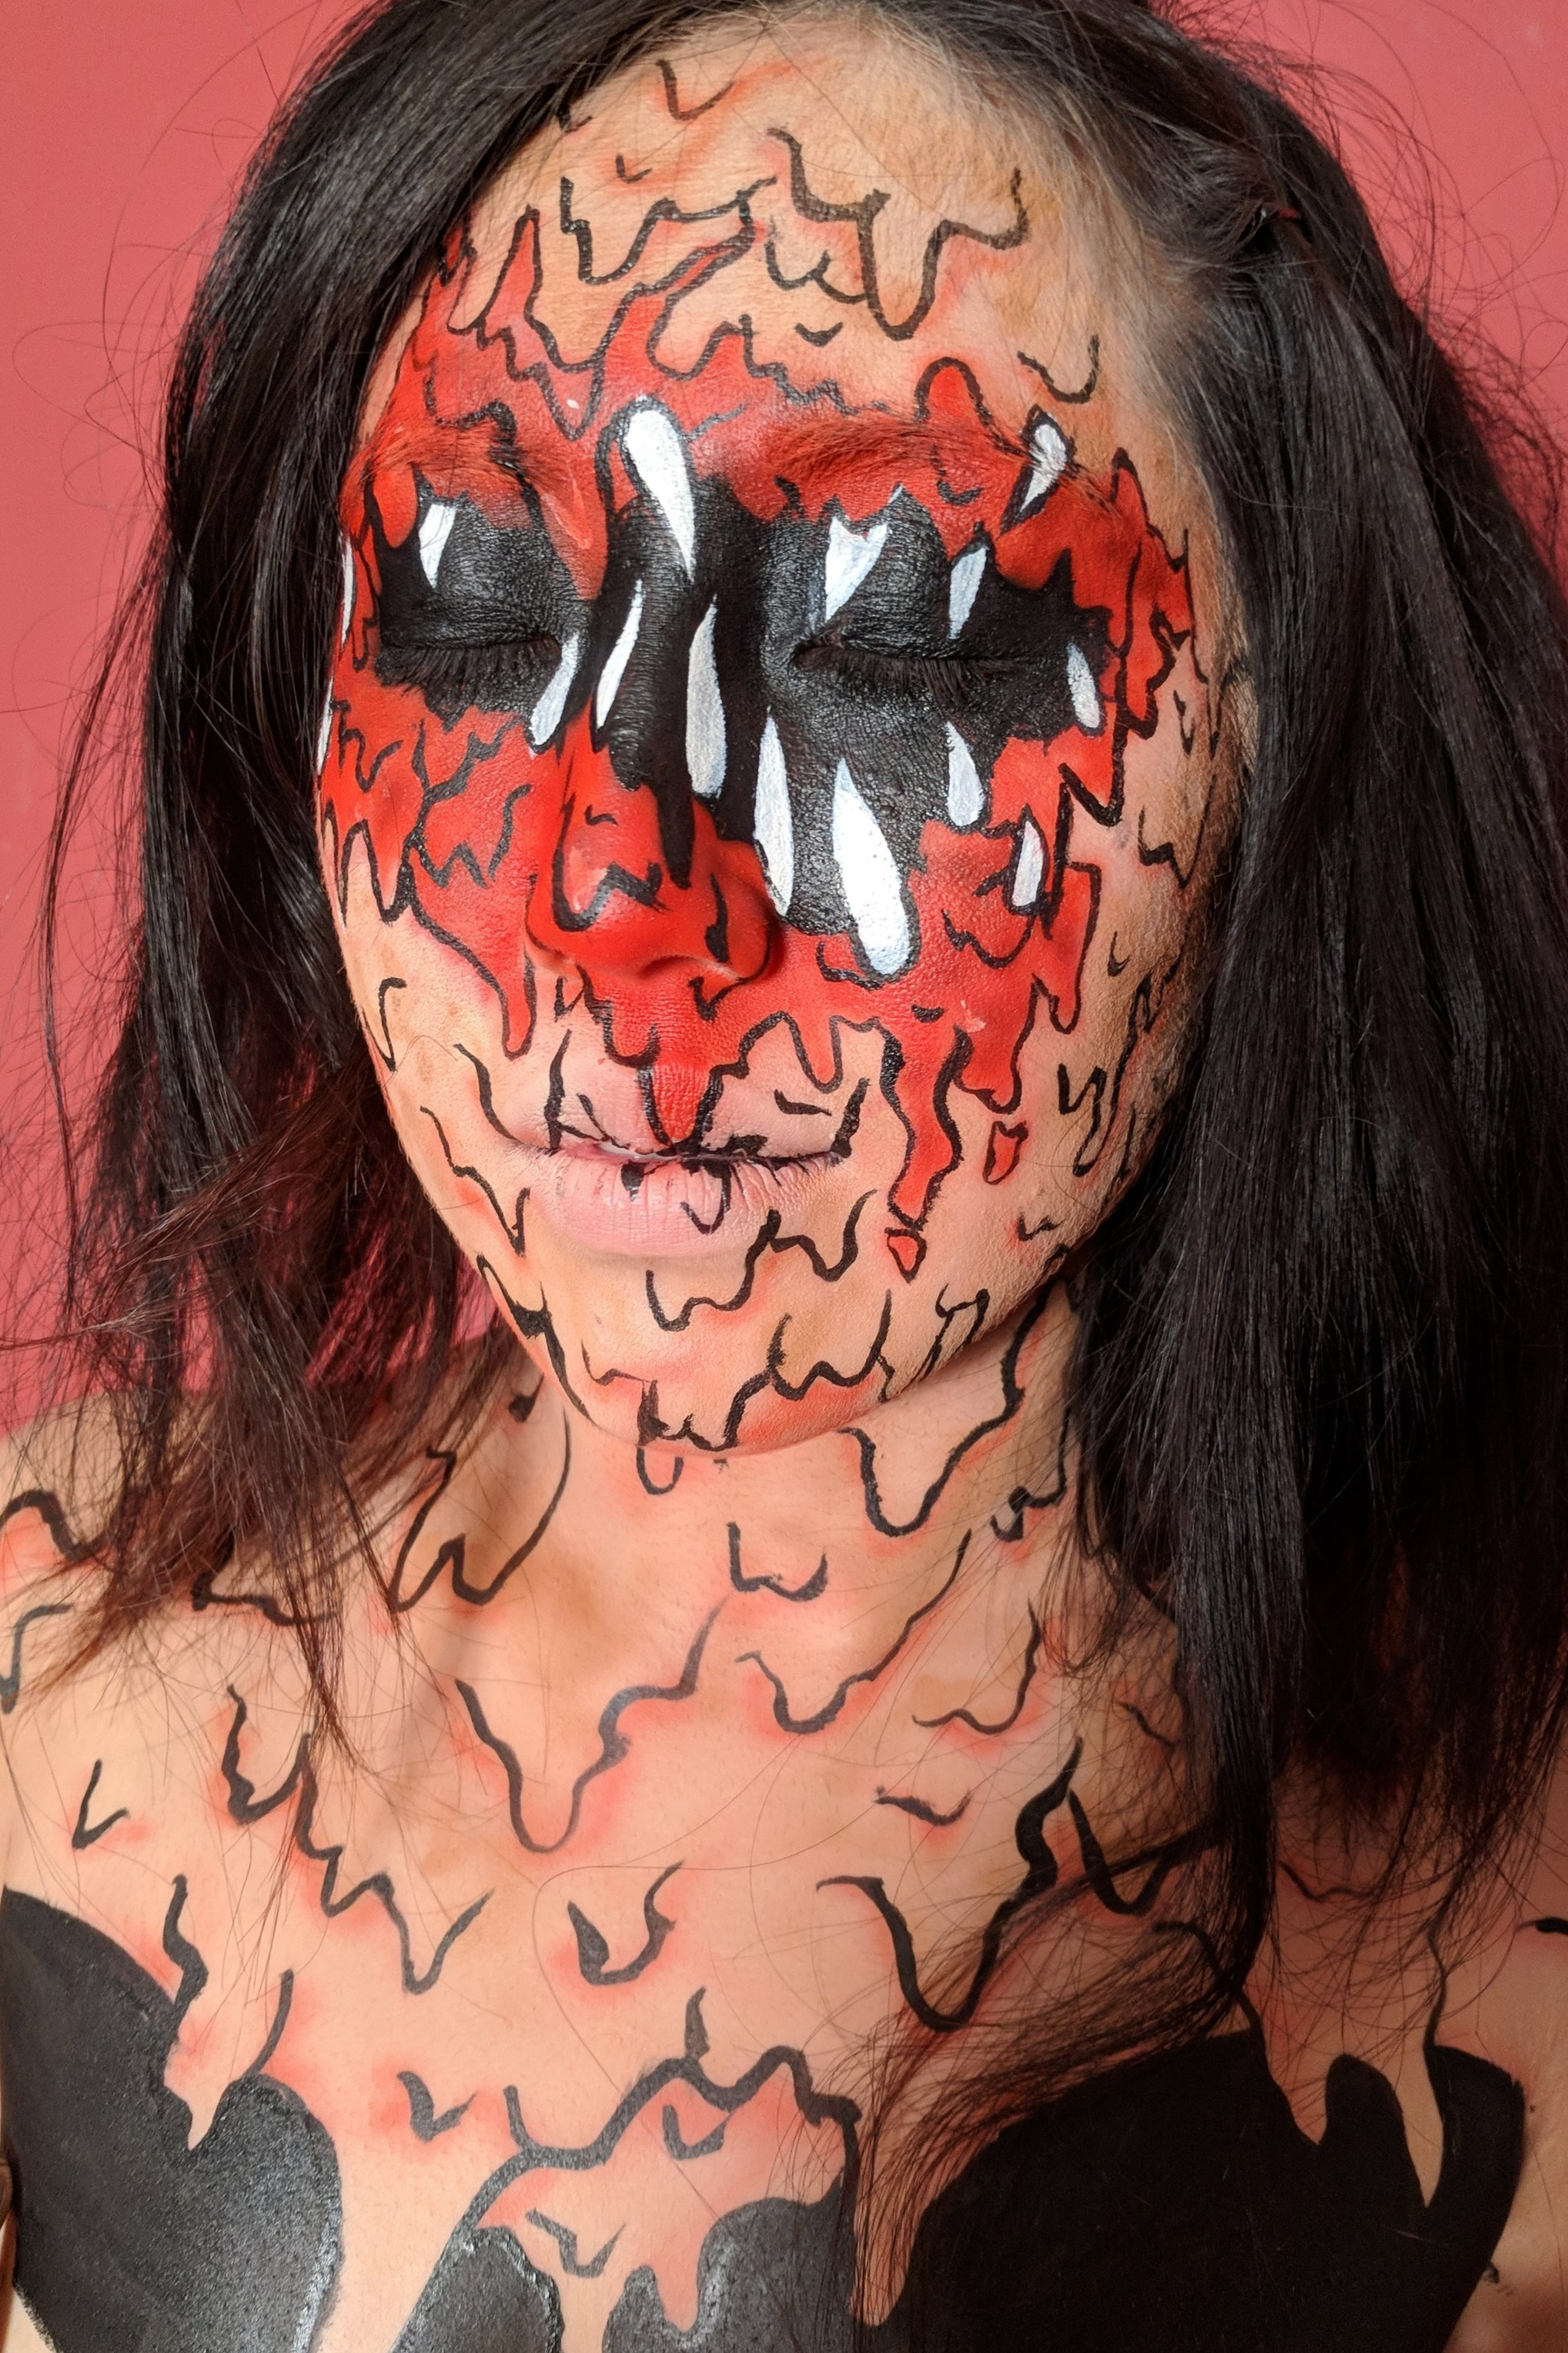 FunnySkullGrin Body Paint, 2018  Model: Kate Le  Photographer: Crista Llewellyn  Makeup provided by: European Body Art and Wolfe Art Fx